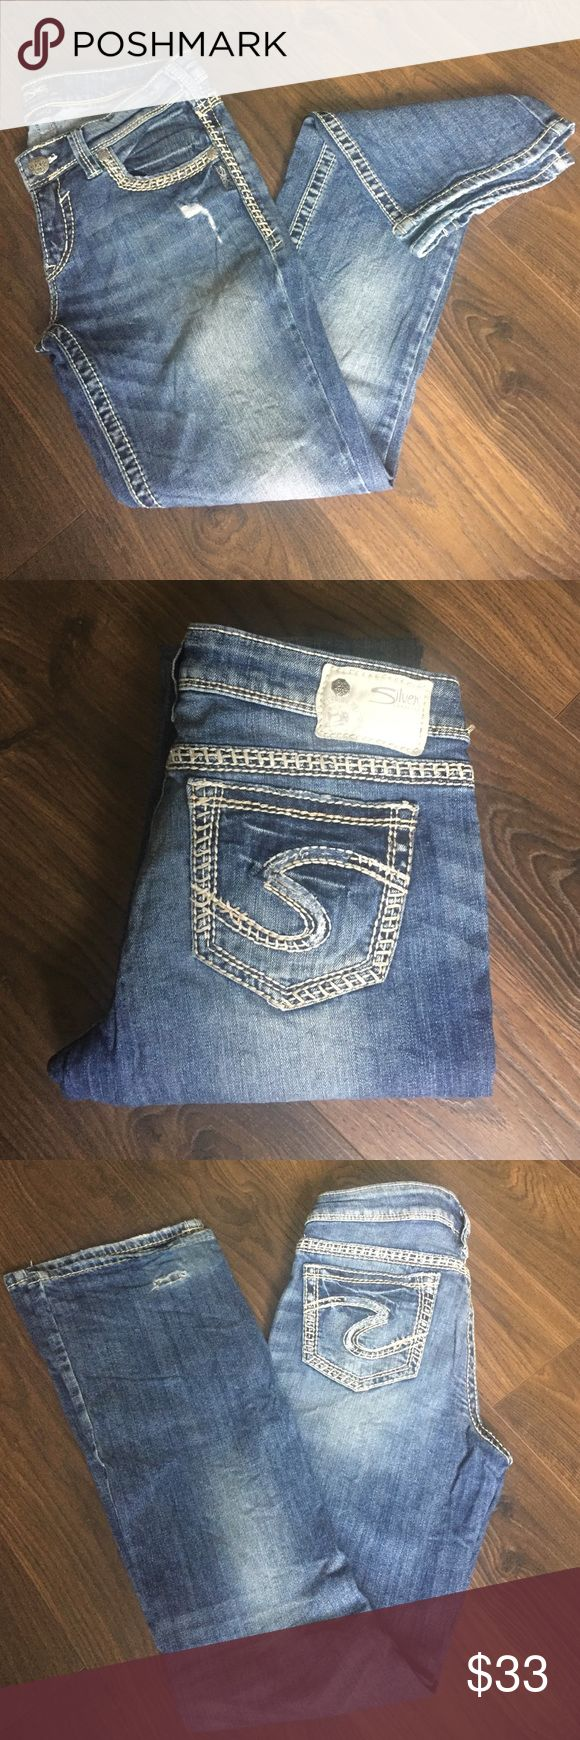 """Woman's silver jeans 29/33 29/33 gently used distressed silver jeans """"aiko"""" Silver Jeans Jeans Straight Leg"""